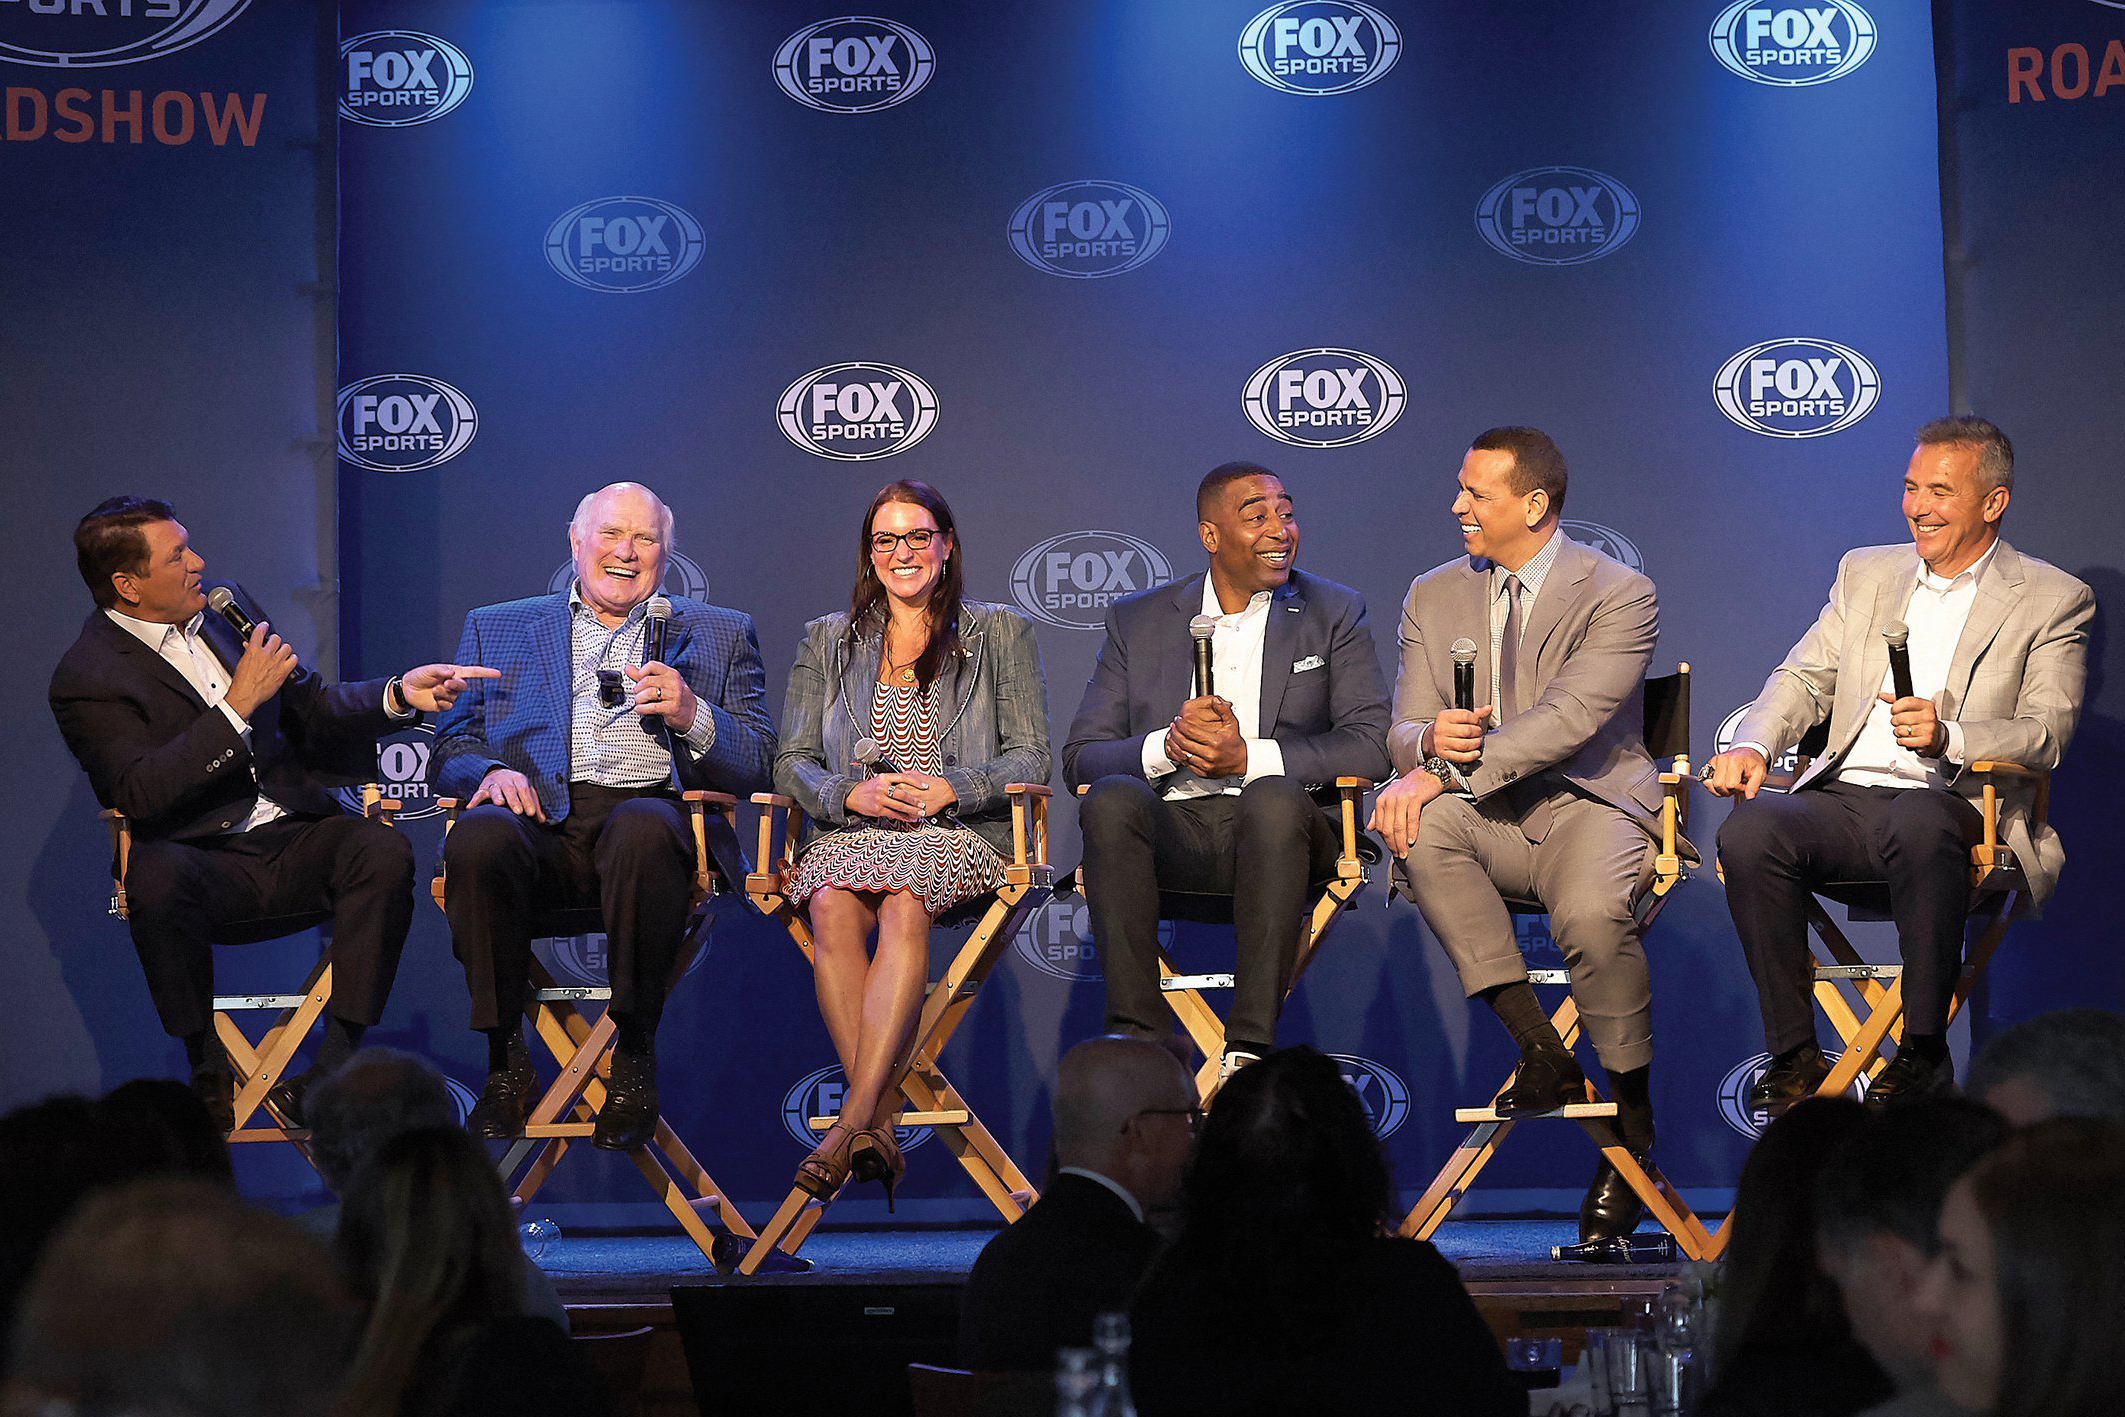 Fox Sports' upfront with Terry Bradshaw, Alex Rodriguez and more offers a look into its focus on live broadcasts.